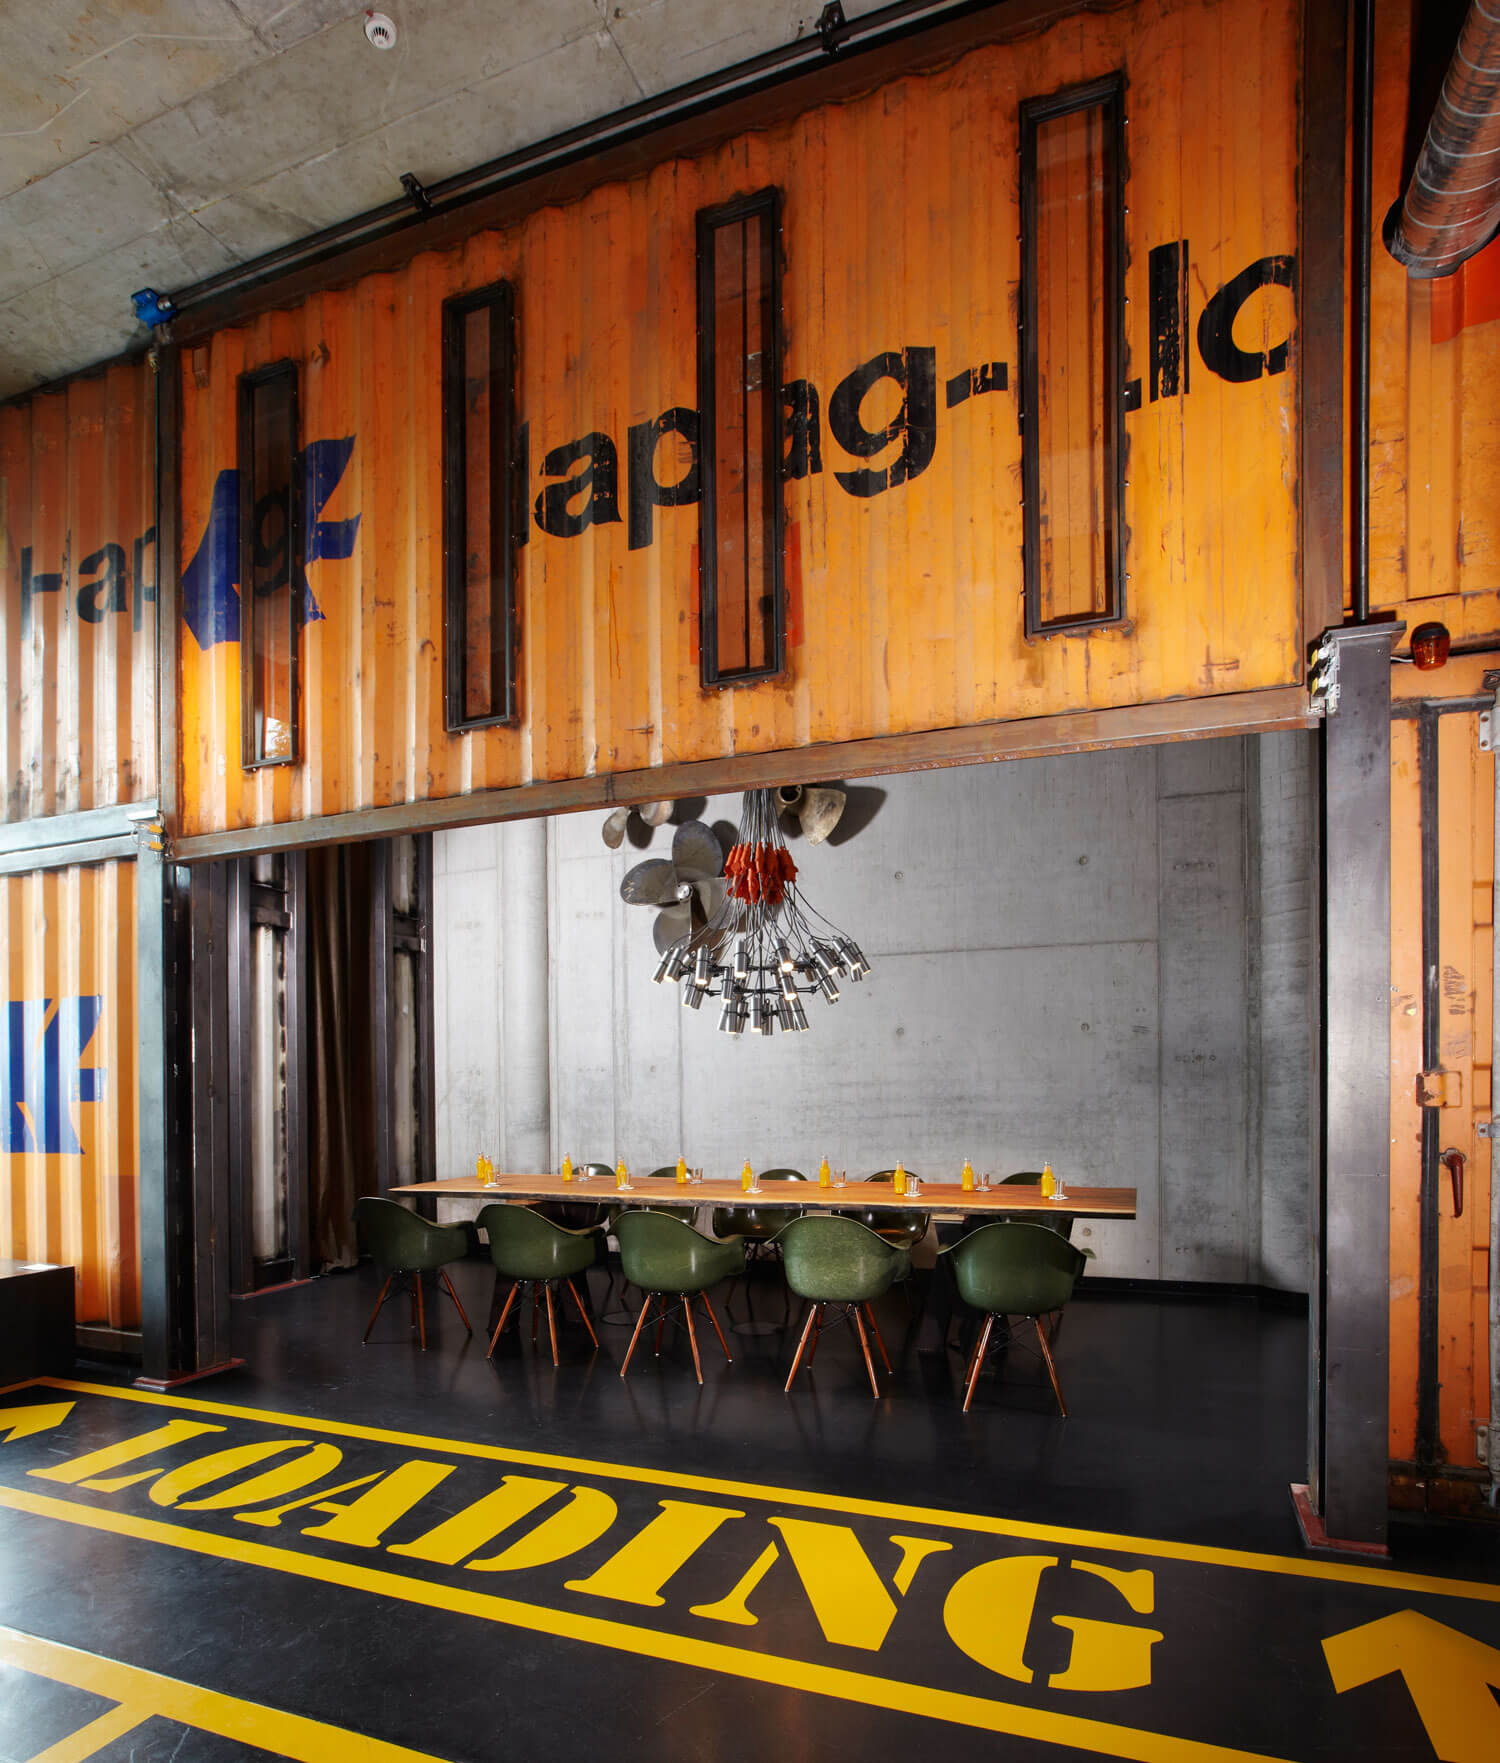 25h-HafenCity---Container-3-gross